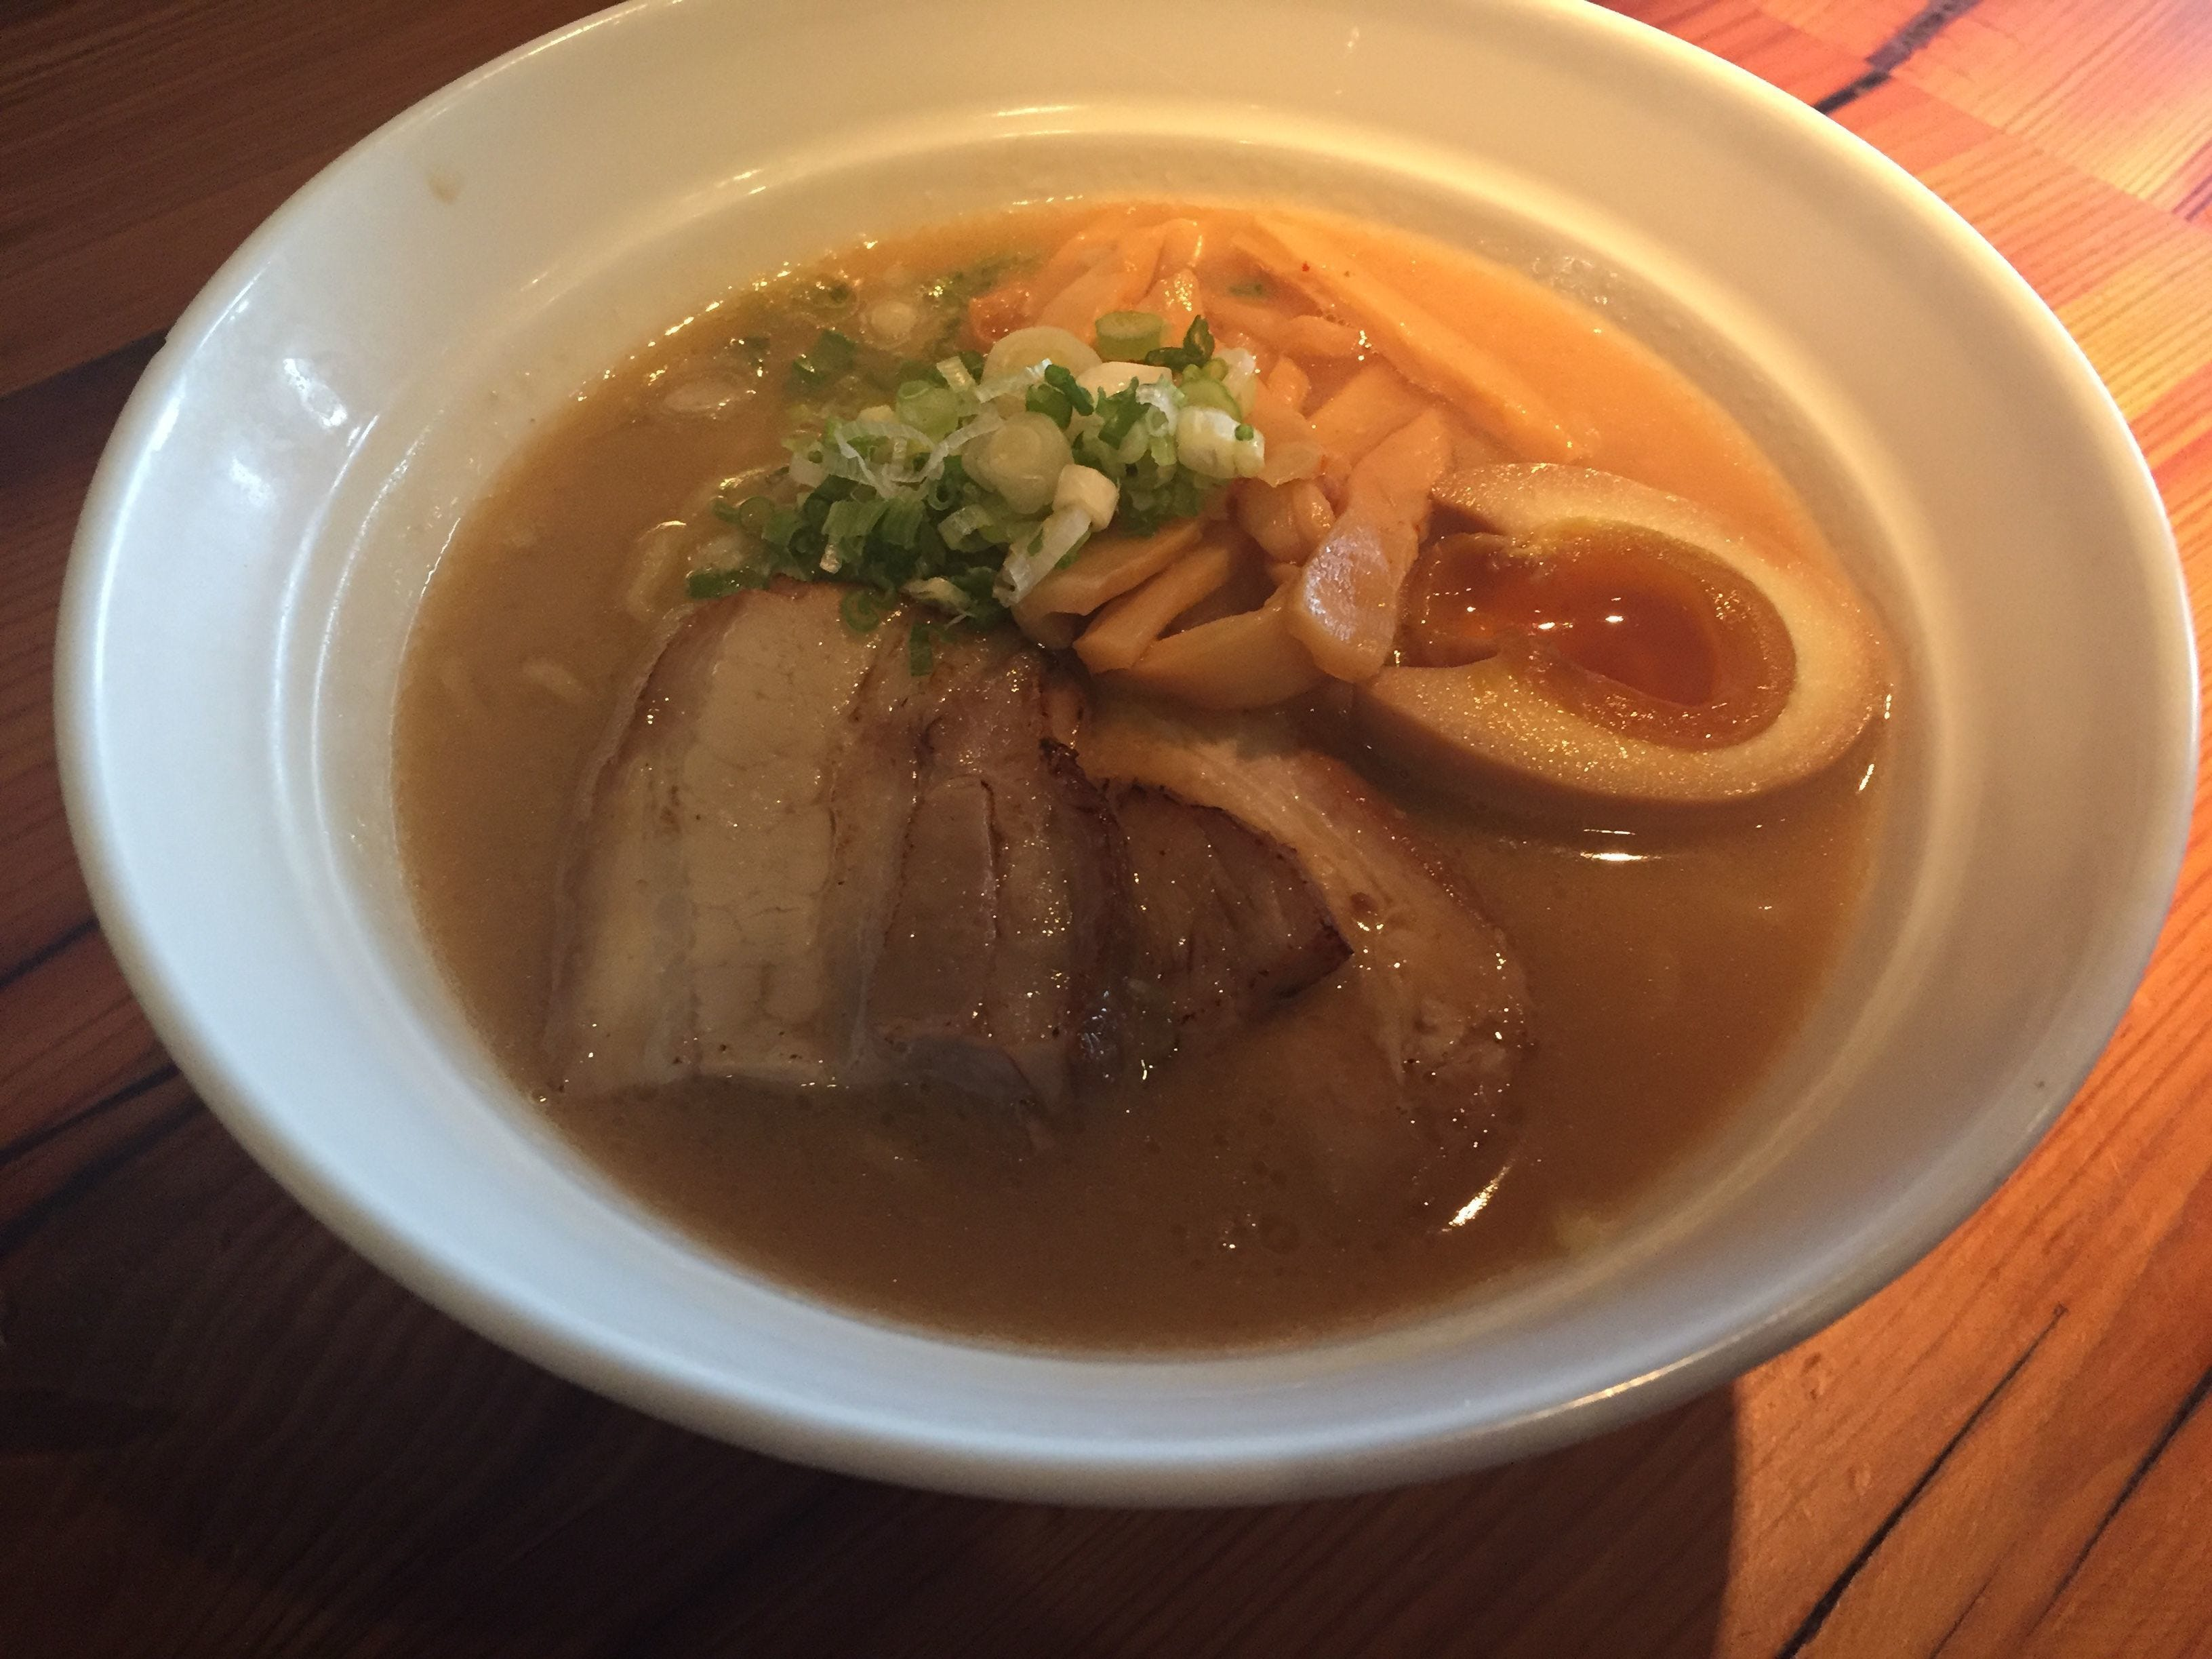 Miso ramen with pork and boiled egg at Zundo in Over-the-Rhine